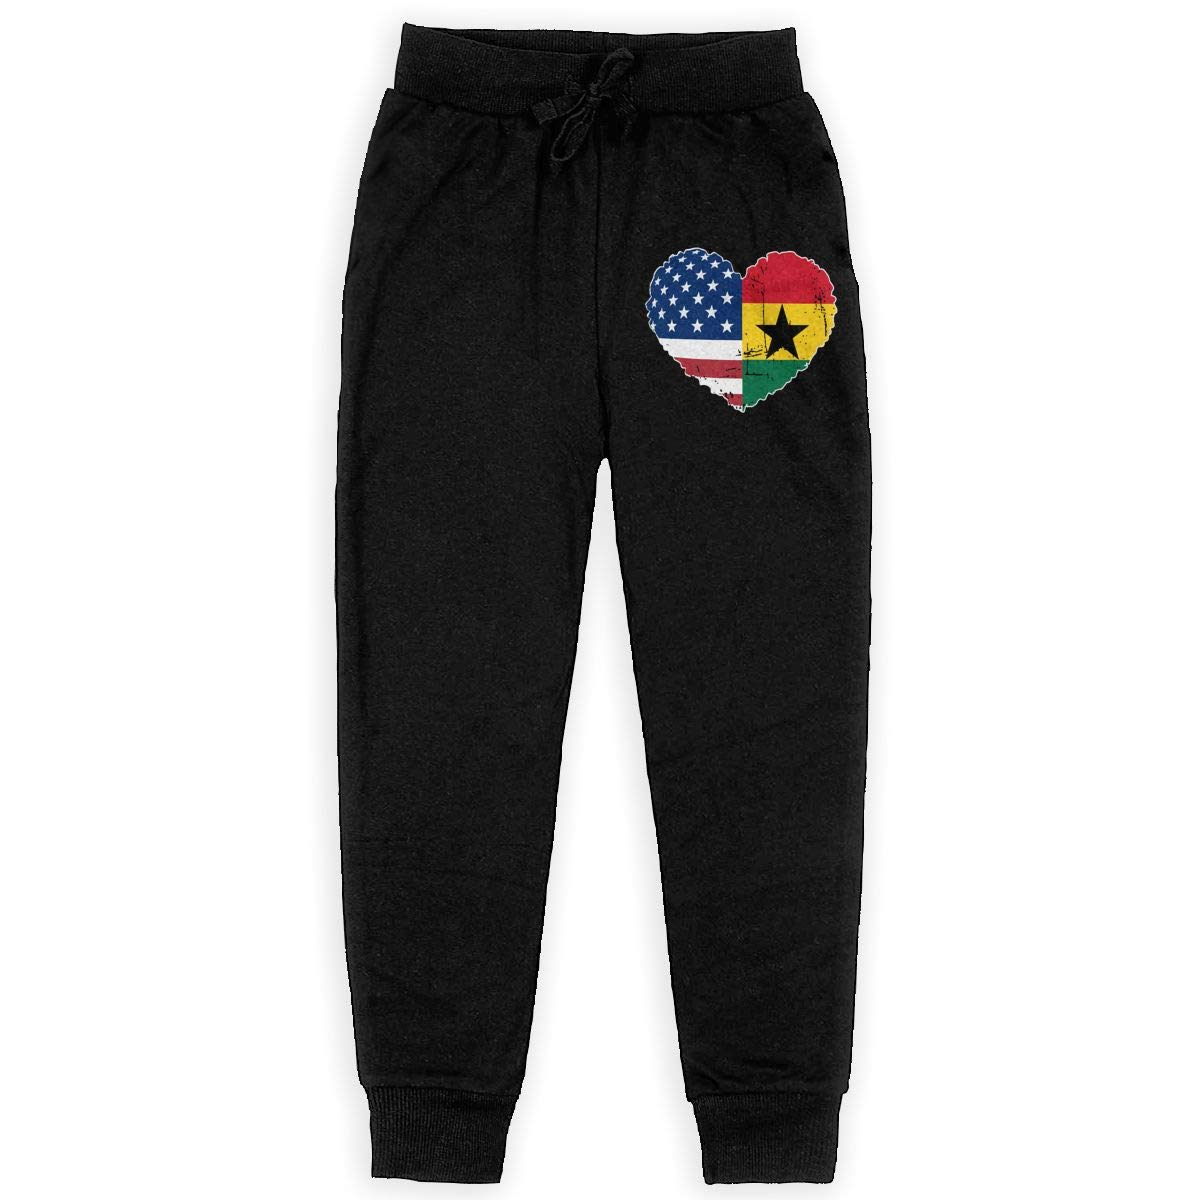 Girls Trousers Boy for Teenager Boys WYZVK22 Ghana USA Flag Heart Soft//Cozy Sweatpants